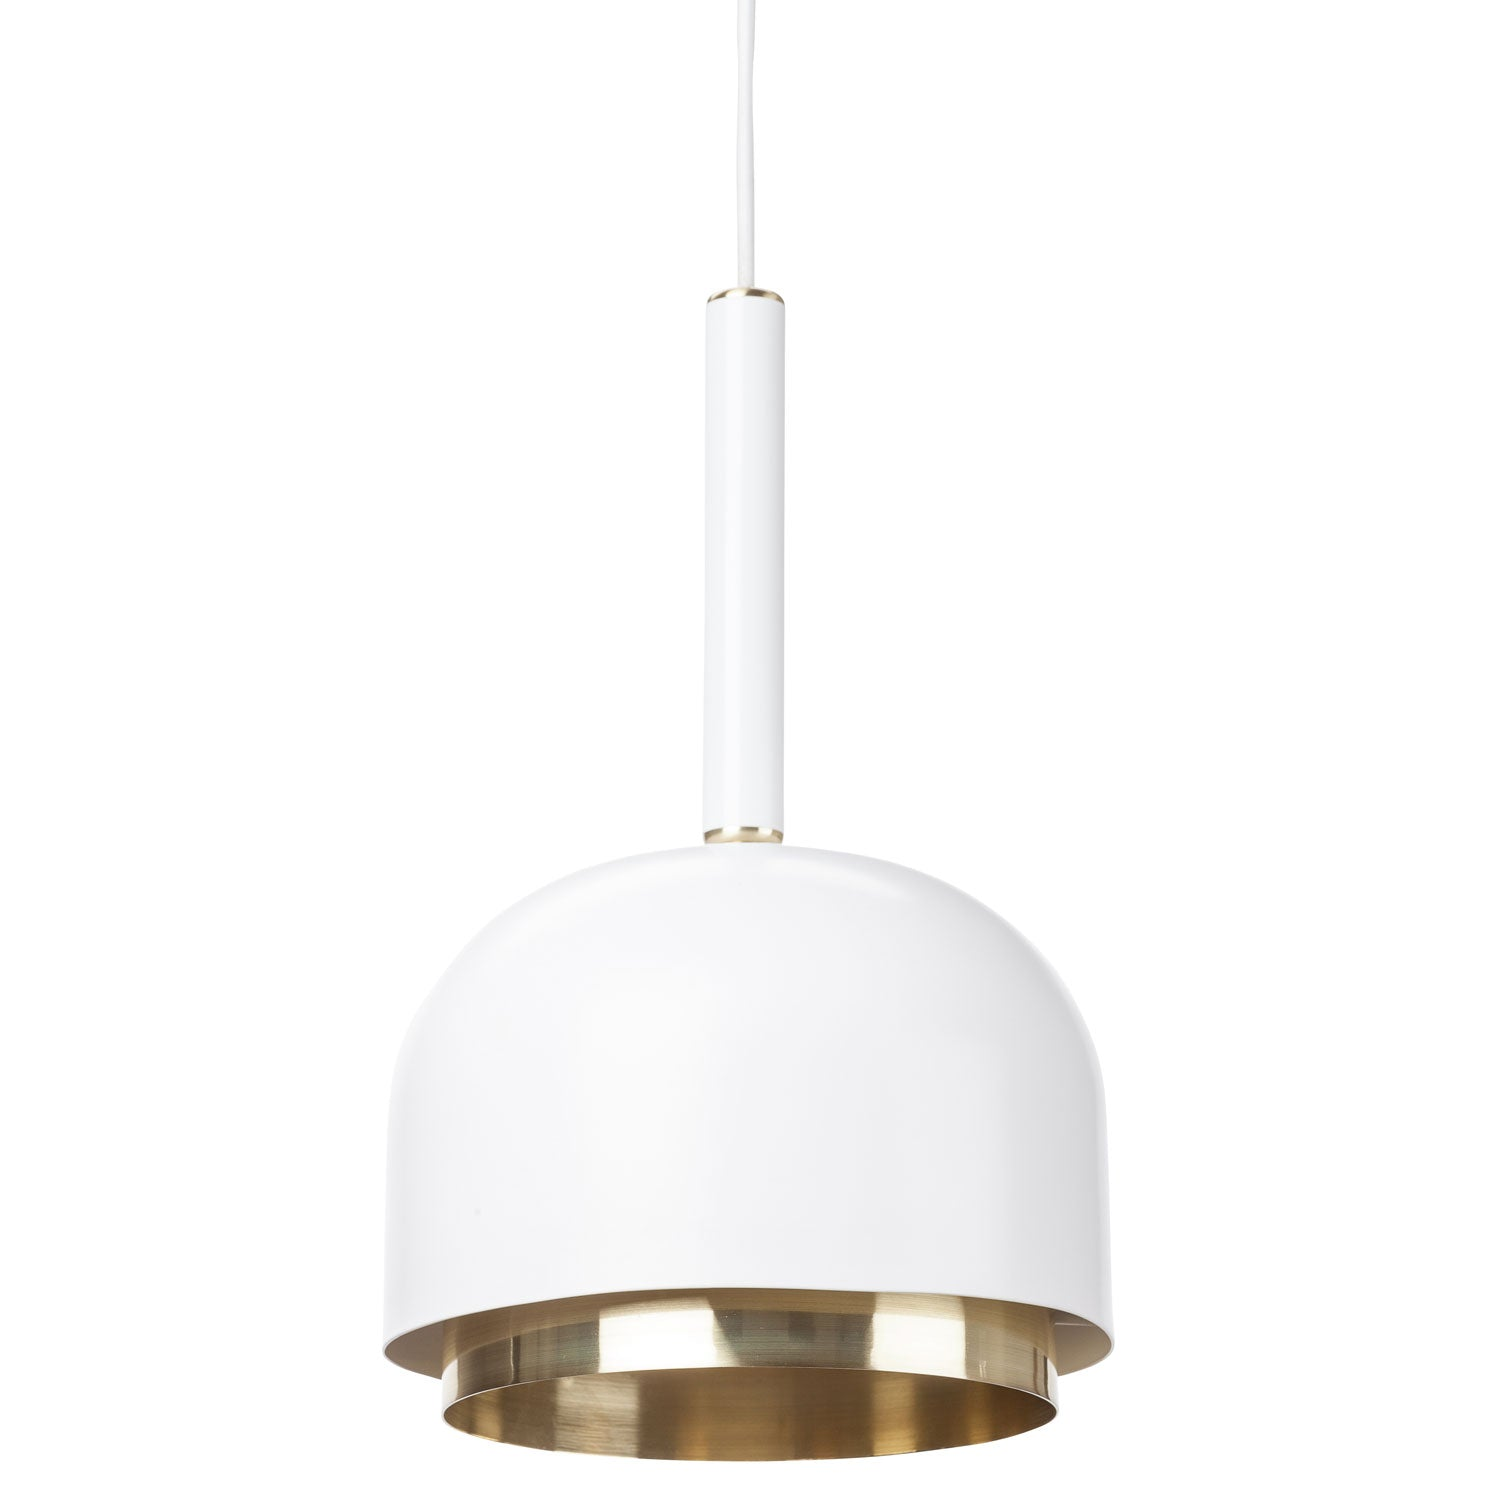 Clean White Steel Pendant Lamp with Brass Accent